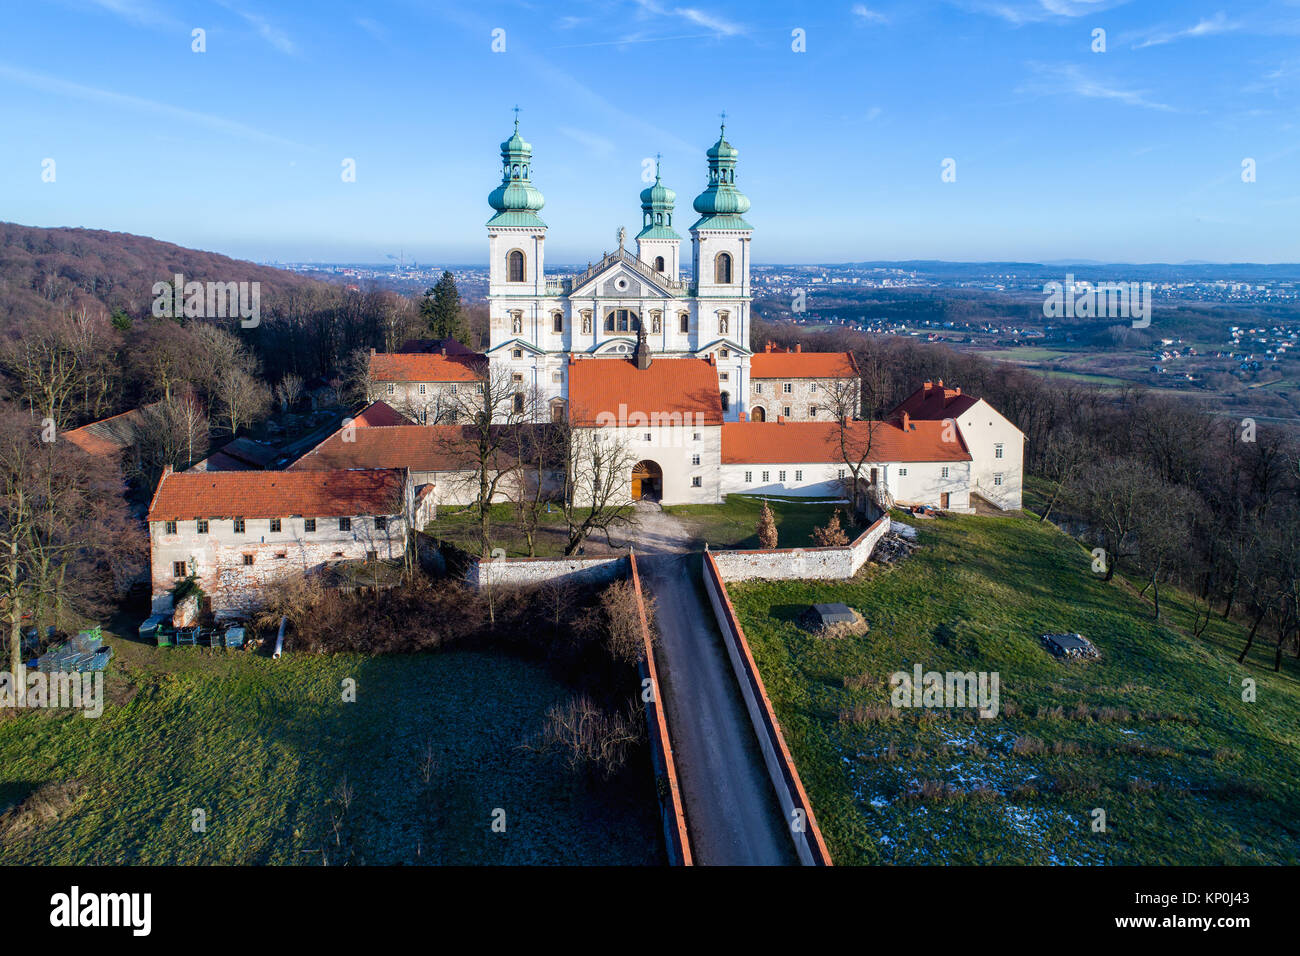 Krakow, Poland. Monastery of cameldolite brothers and baroque church in the wood on the hill in Bielany near Tyniec. - Stock Image